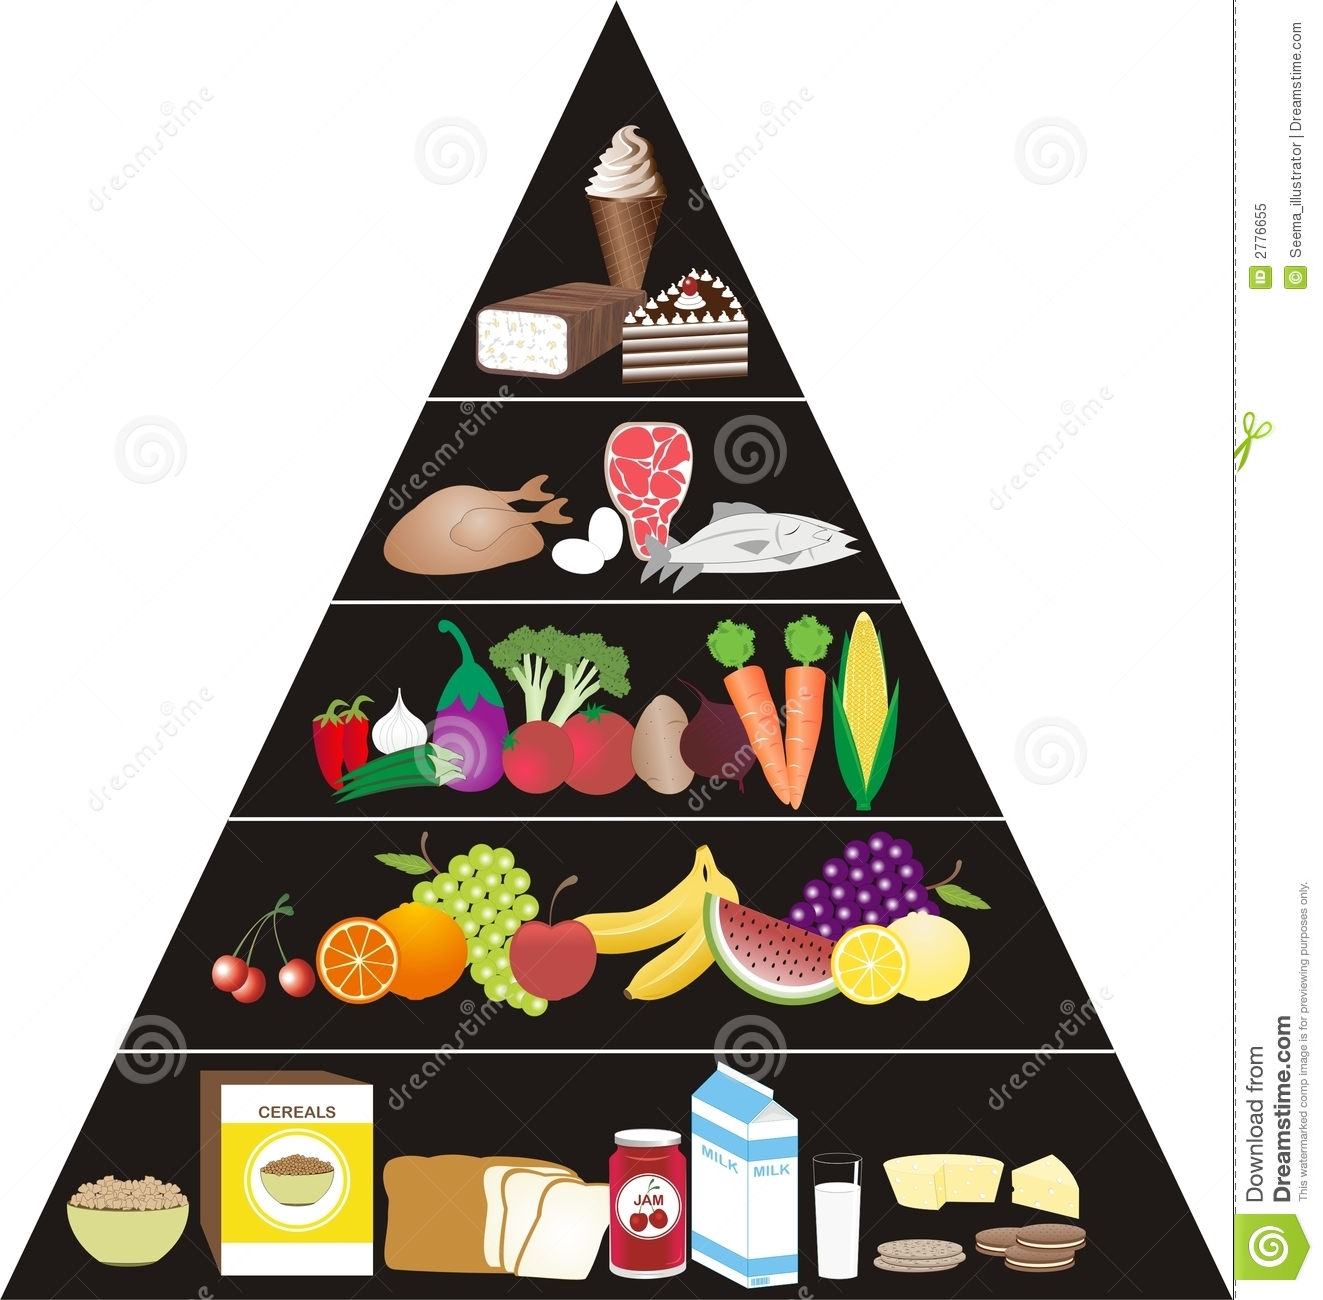 Food Pyramid Royalty Free Stock Photo - Image: 2776655